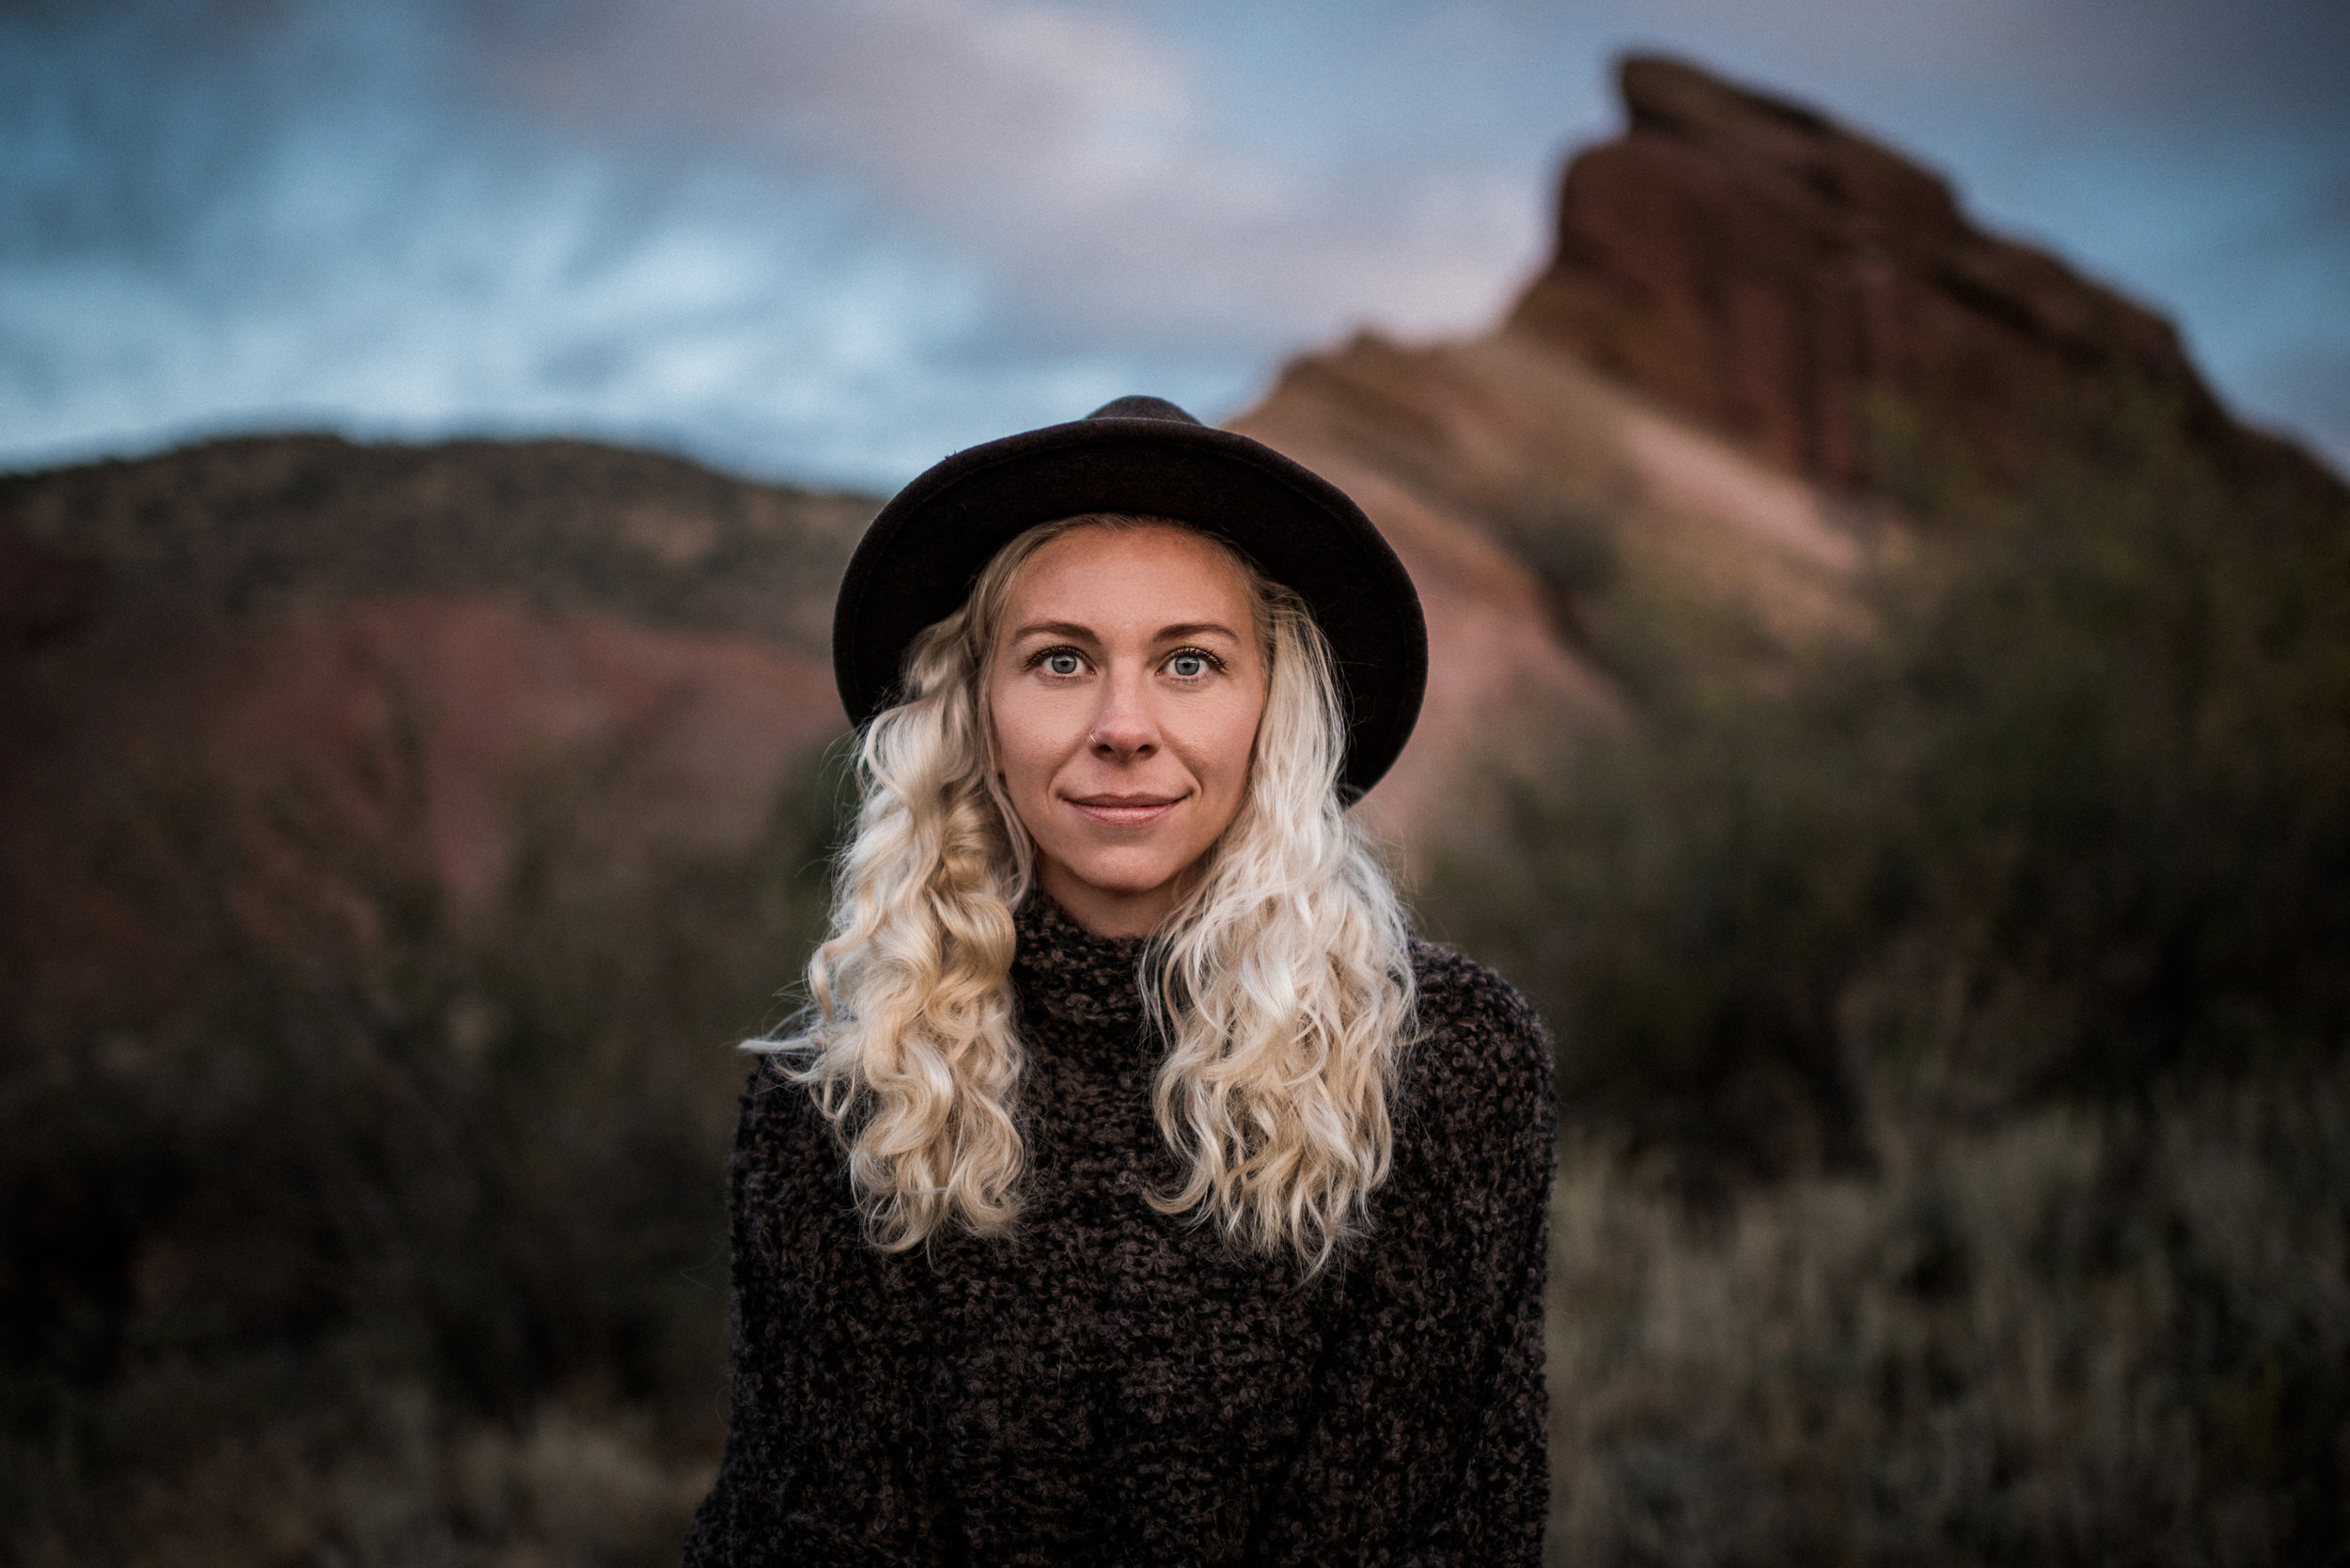 Kate_Sunrise_RedRocks_TaraShupe_DSC_4263-2.jpg